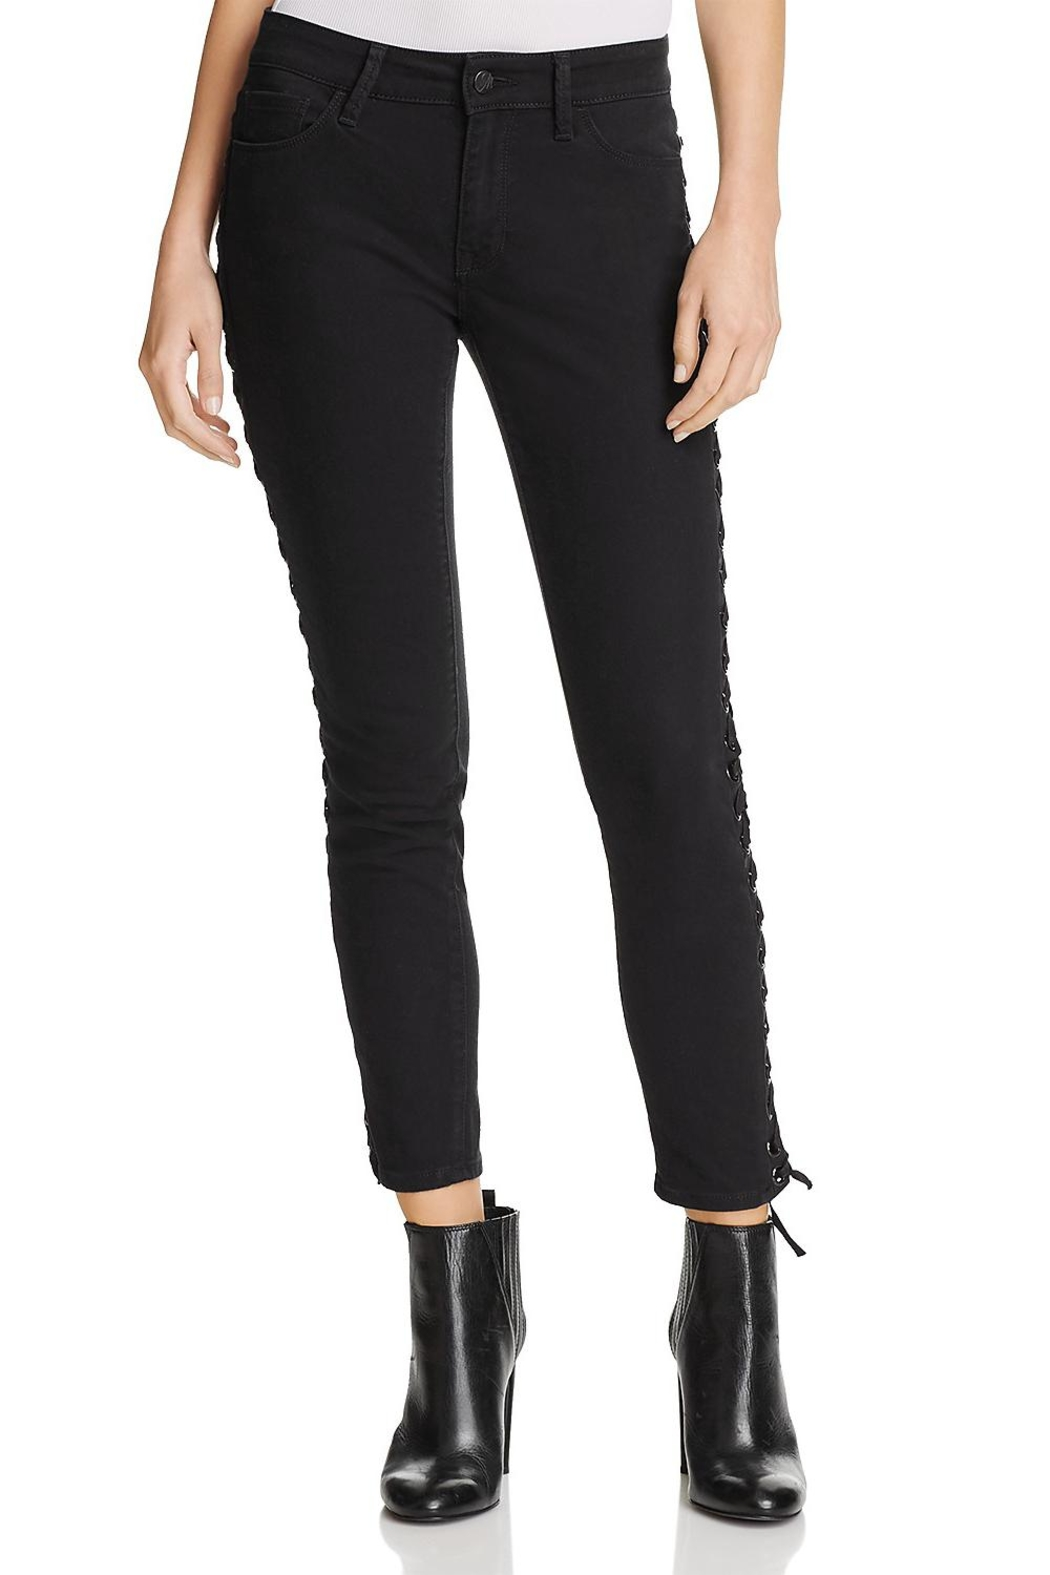 Mavi Jeans Lace Up Jean - Front Full Image